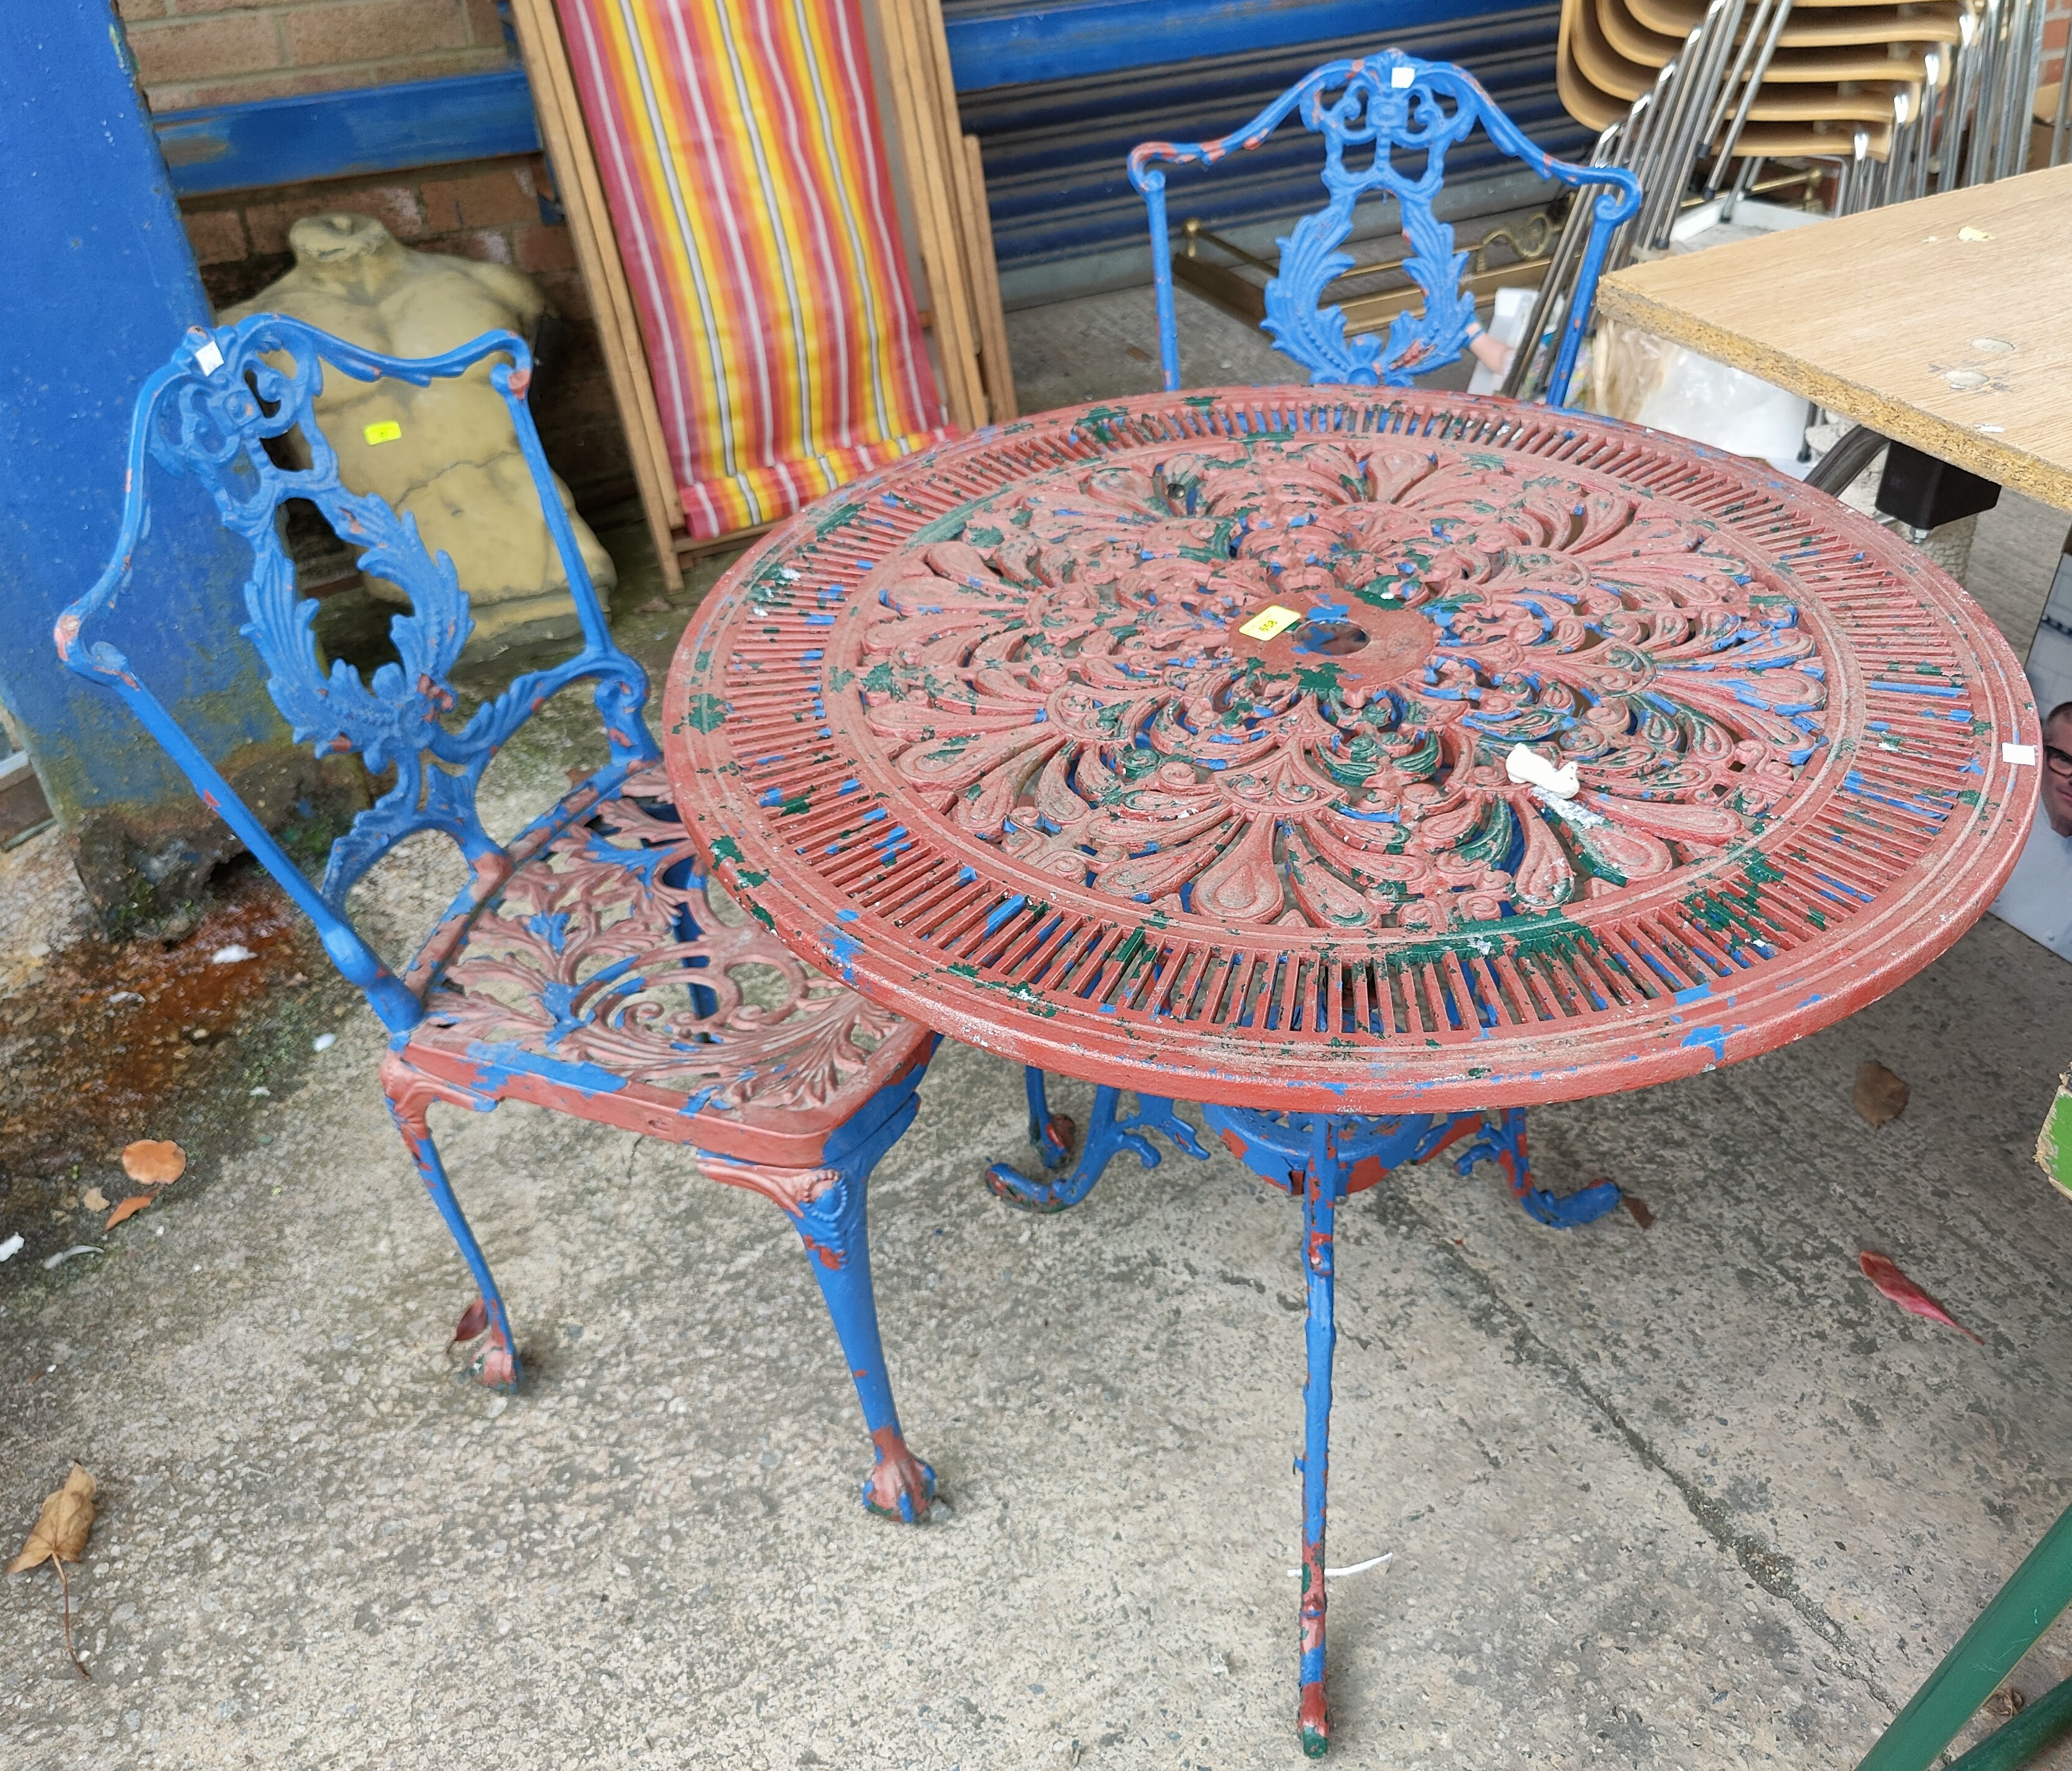 A Victorian style cast metal circular garden table and two chairs